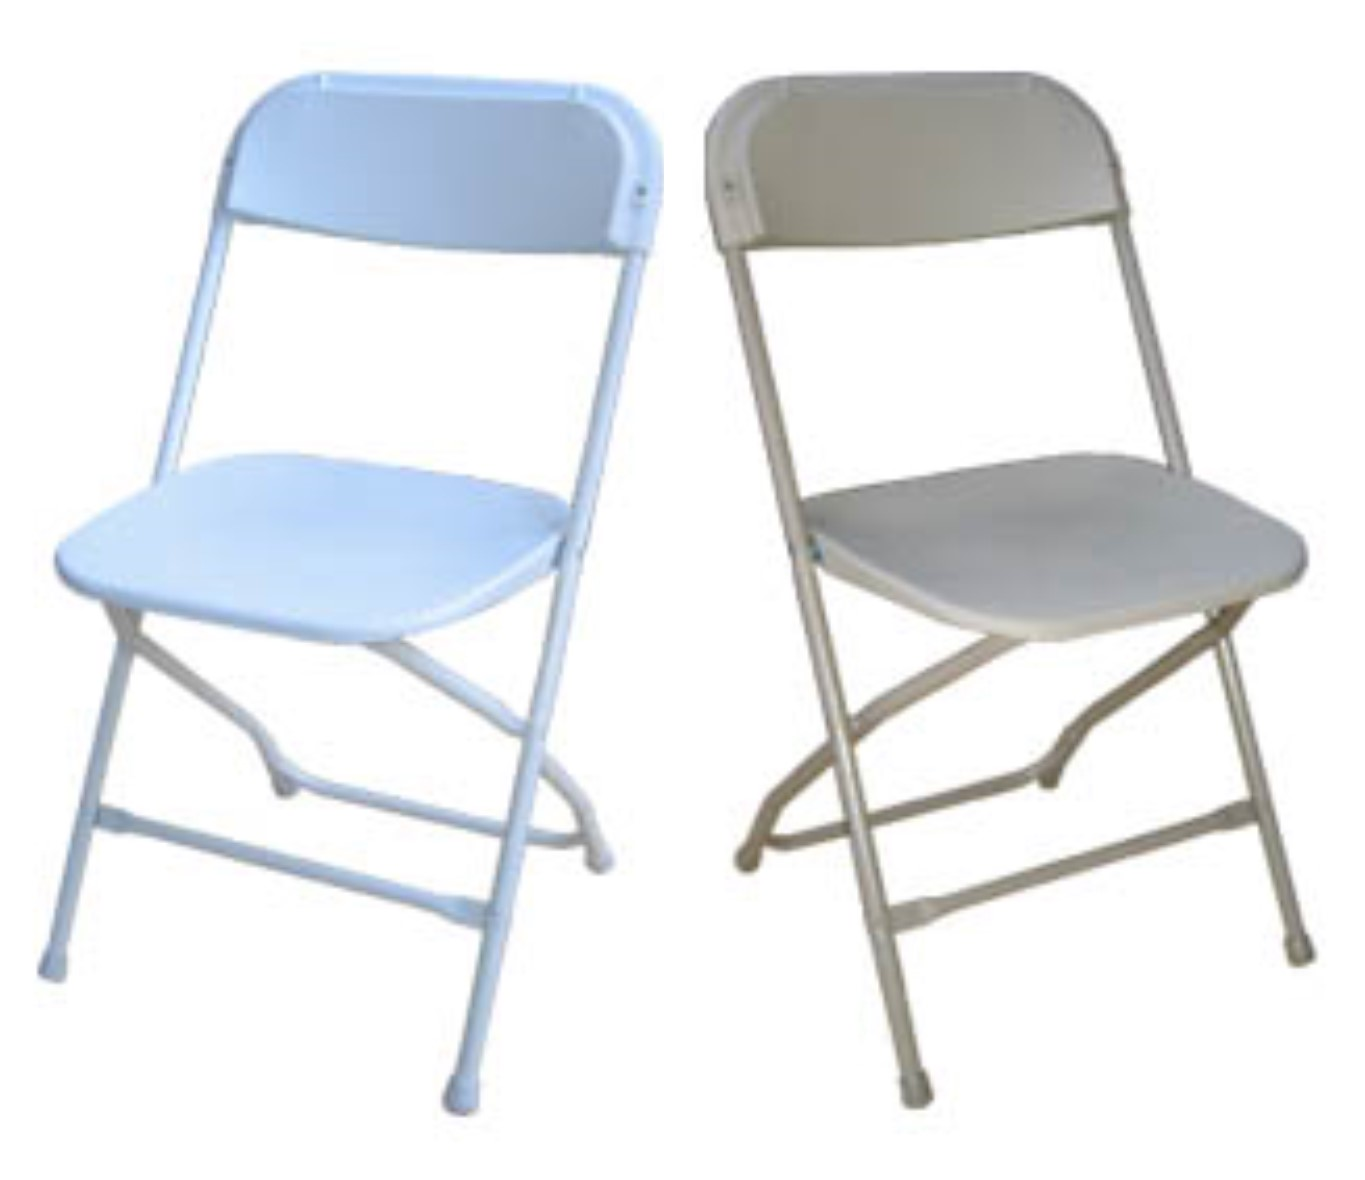 Collapsible Chair Chairs Plastic Folding Chairs